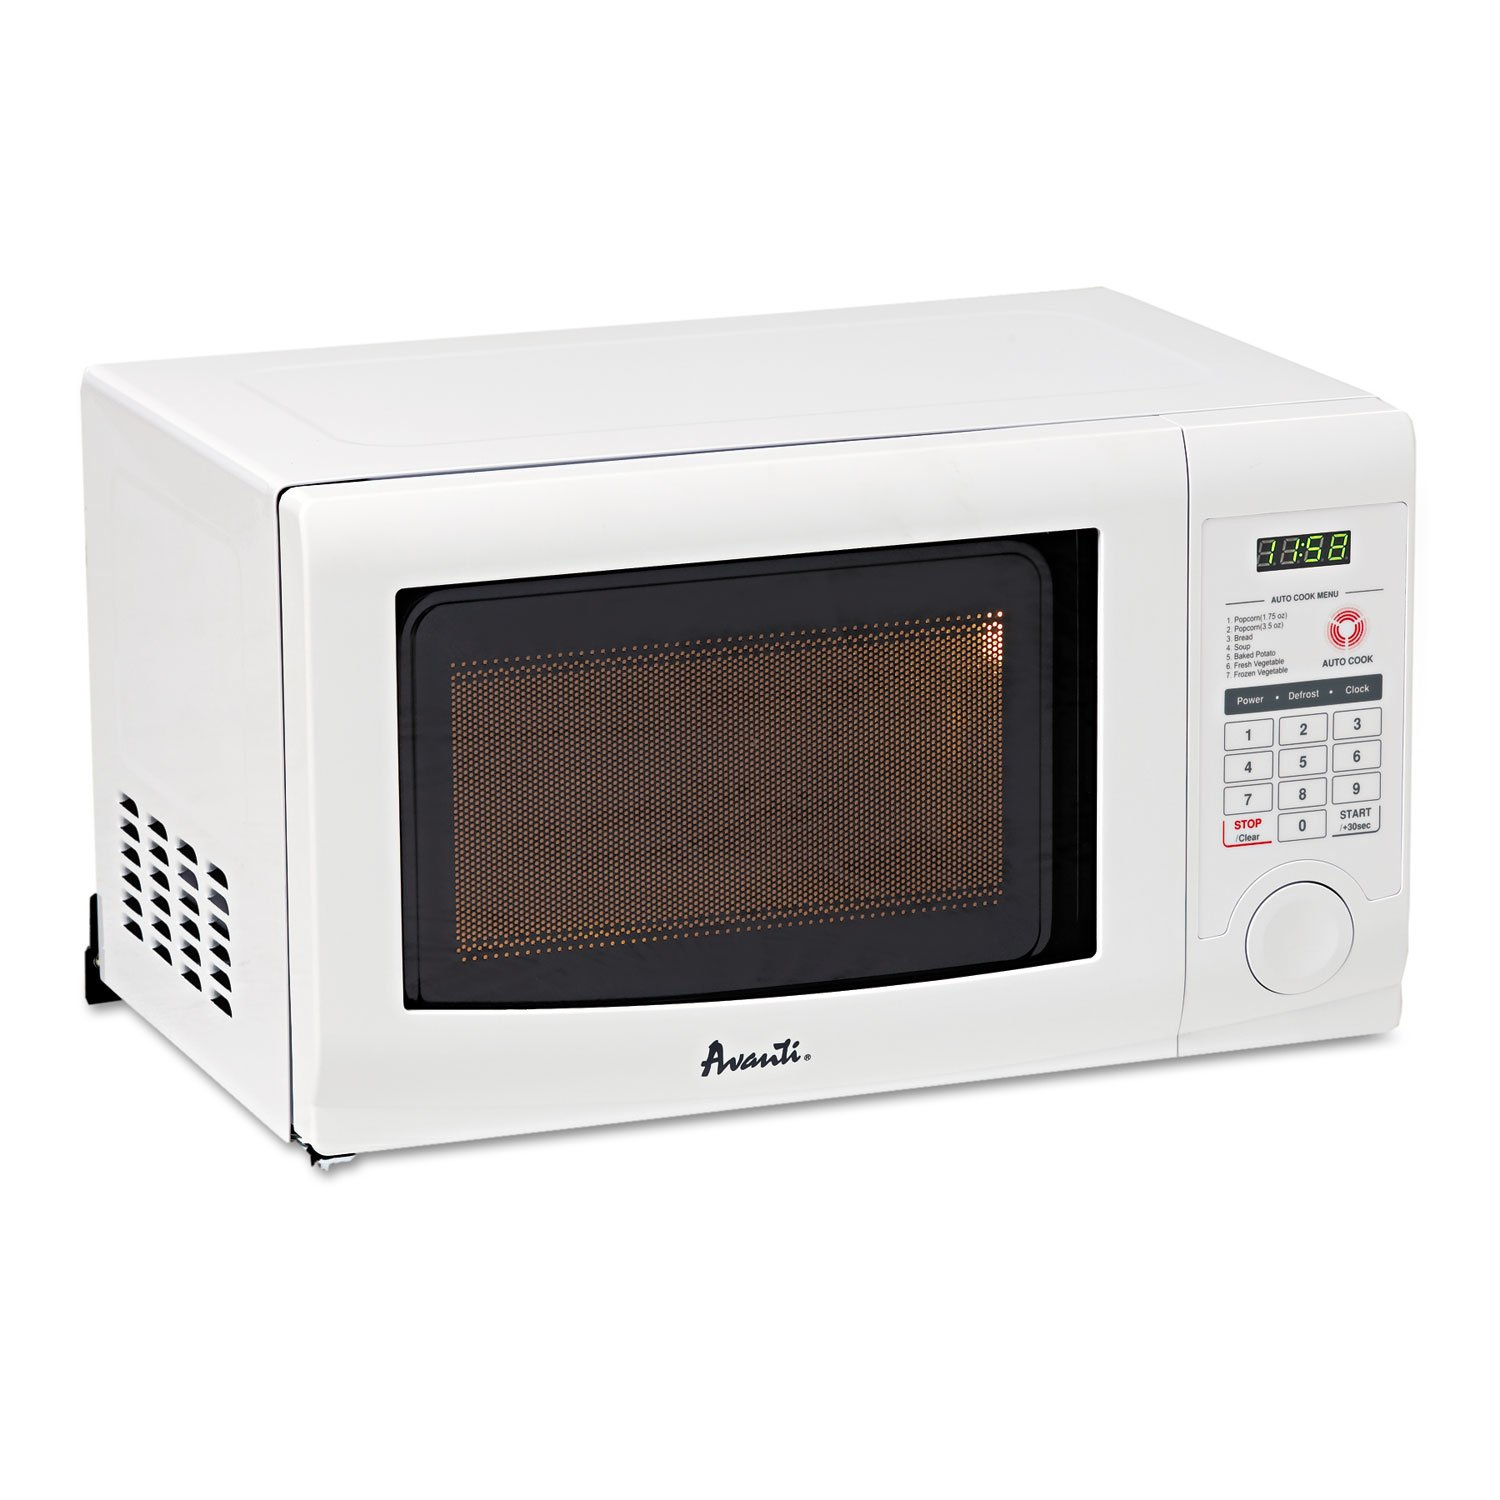 Avanti 18 0.7 cu.ft. Countertop Microwave MO7191TW Color: Black recommend